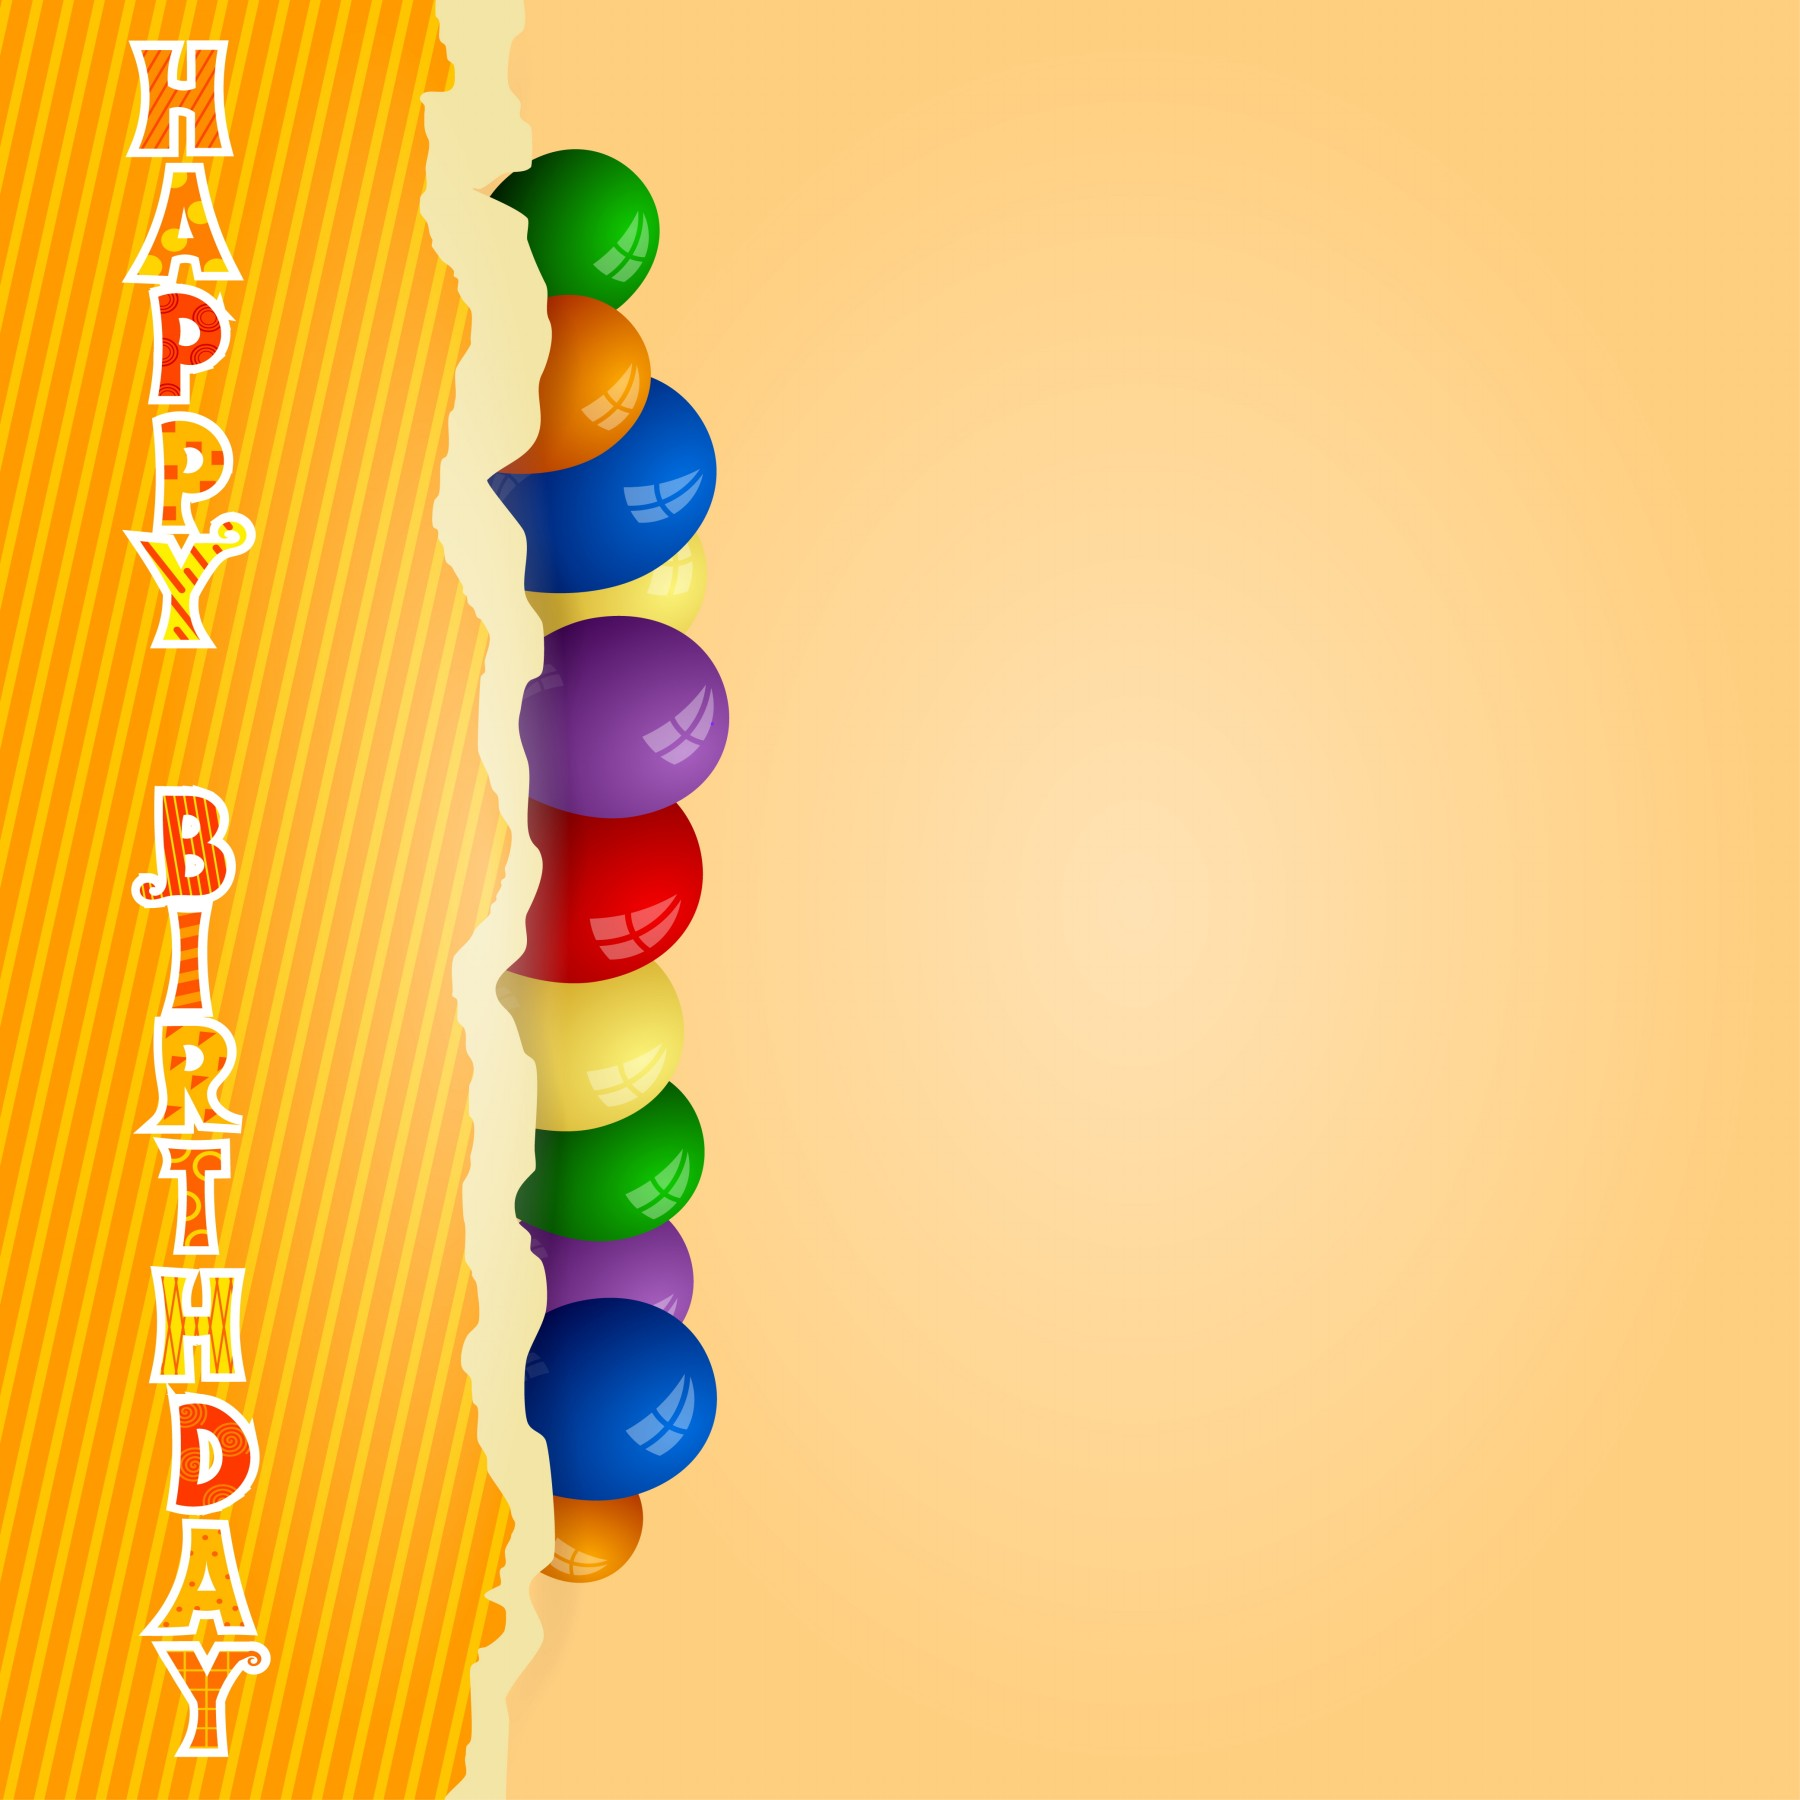 birthday wishes background wallpaper ; colorful-balls-image-hd-HBGS001216